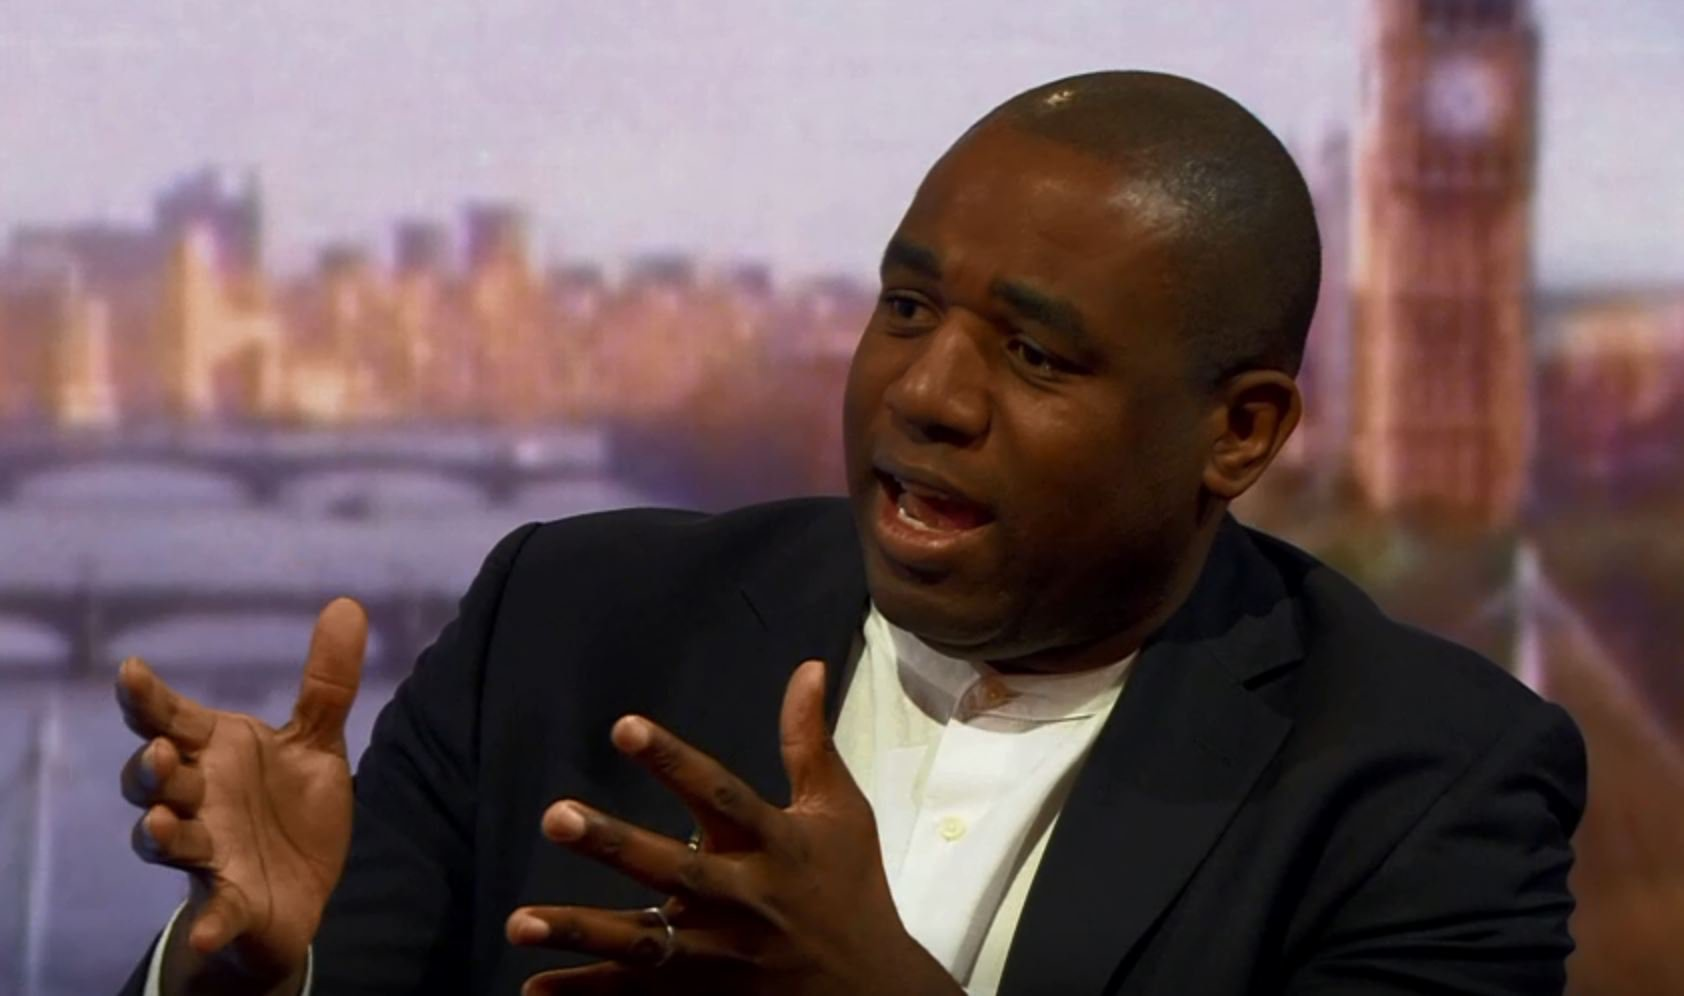 David Lammy defends likening Rees-Mogg to nazis Screengrab from BBC https://twitter.com/BBCPolitics/status/1117371973112225793